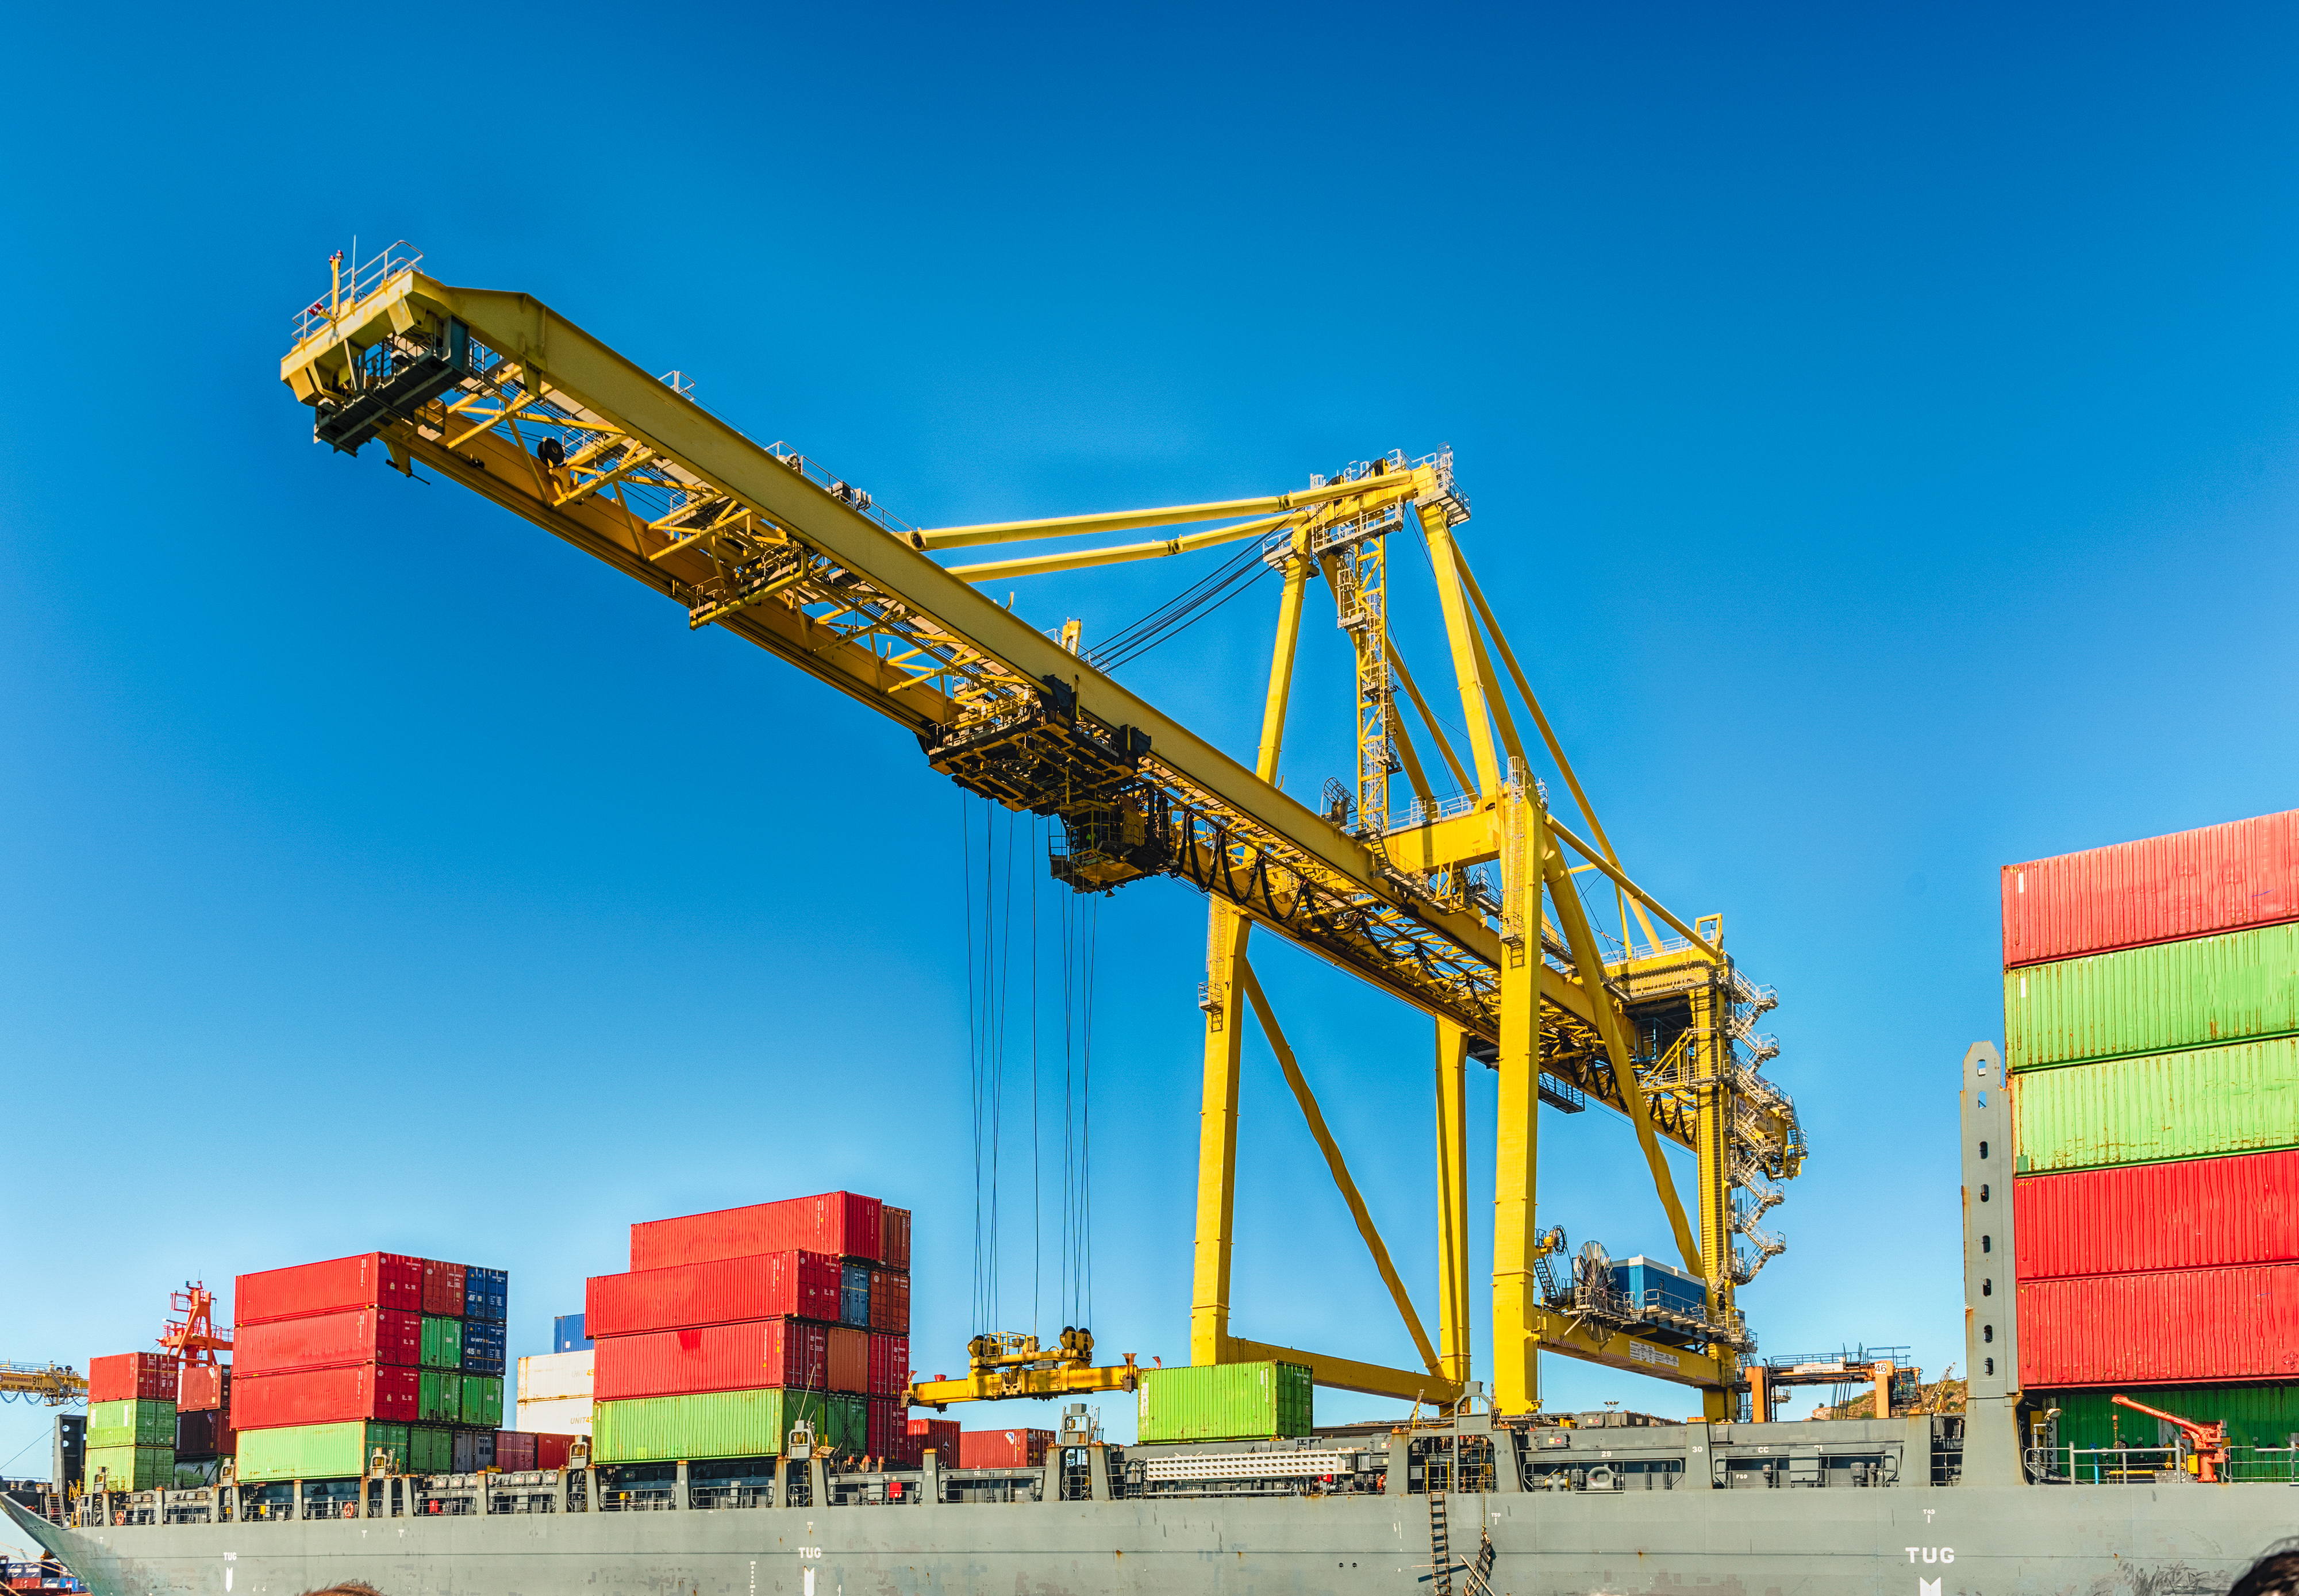 Container crane at the commercial port of Barcelona, Catalonia, Spain